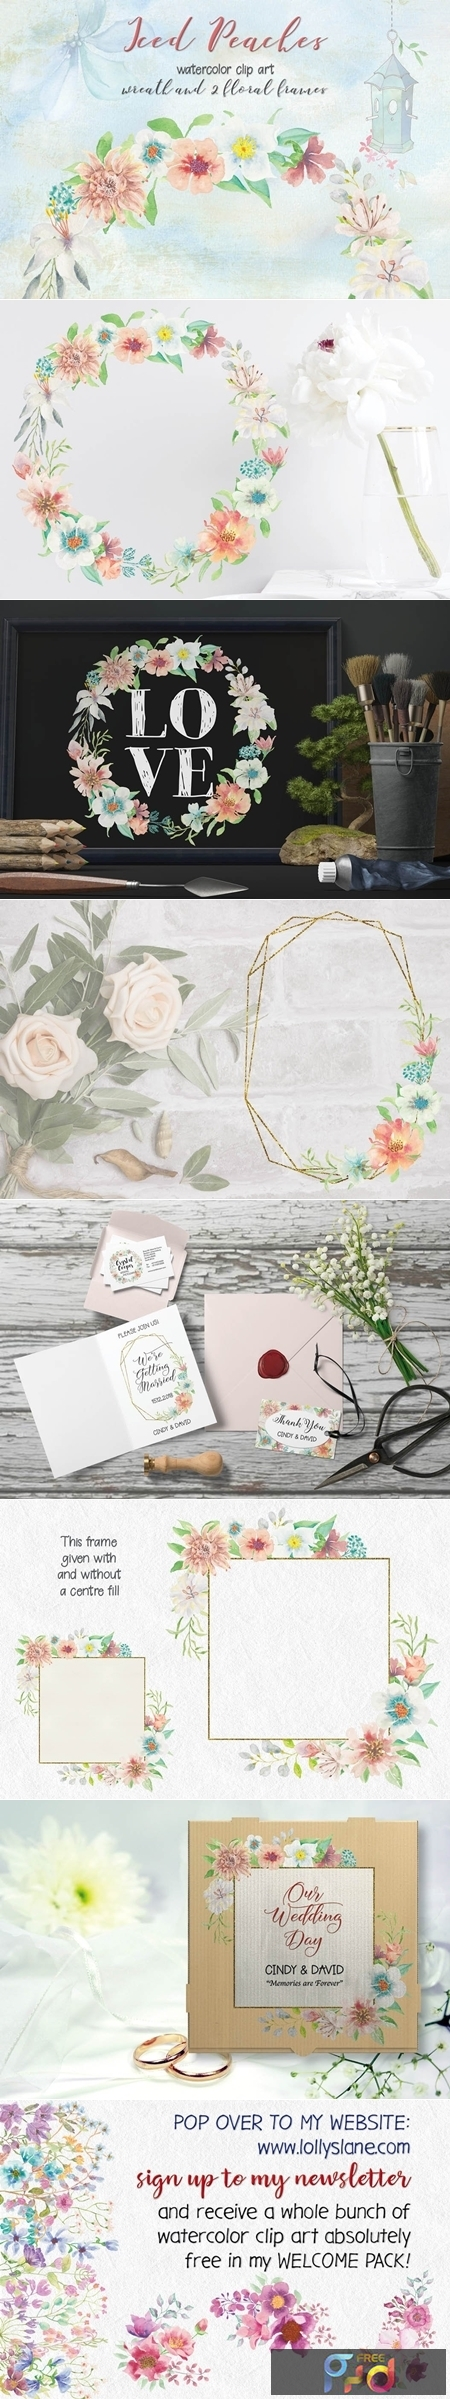 Iced Peaches Watercolor Wreath and Frames 2599612 1